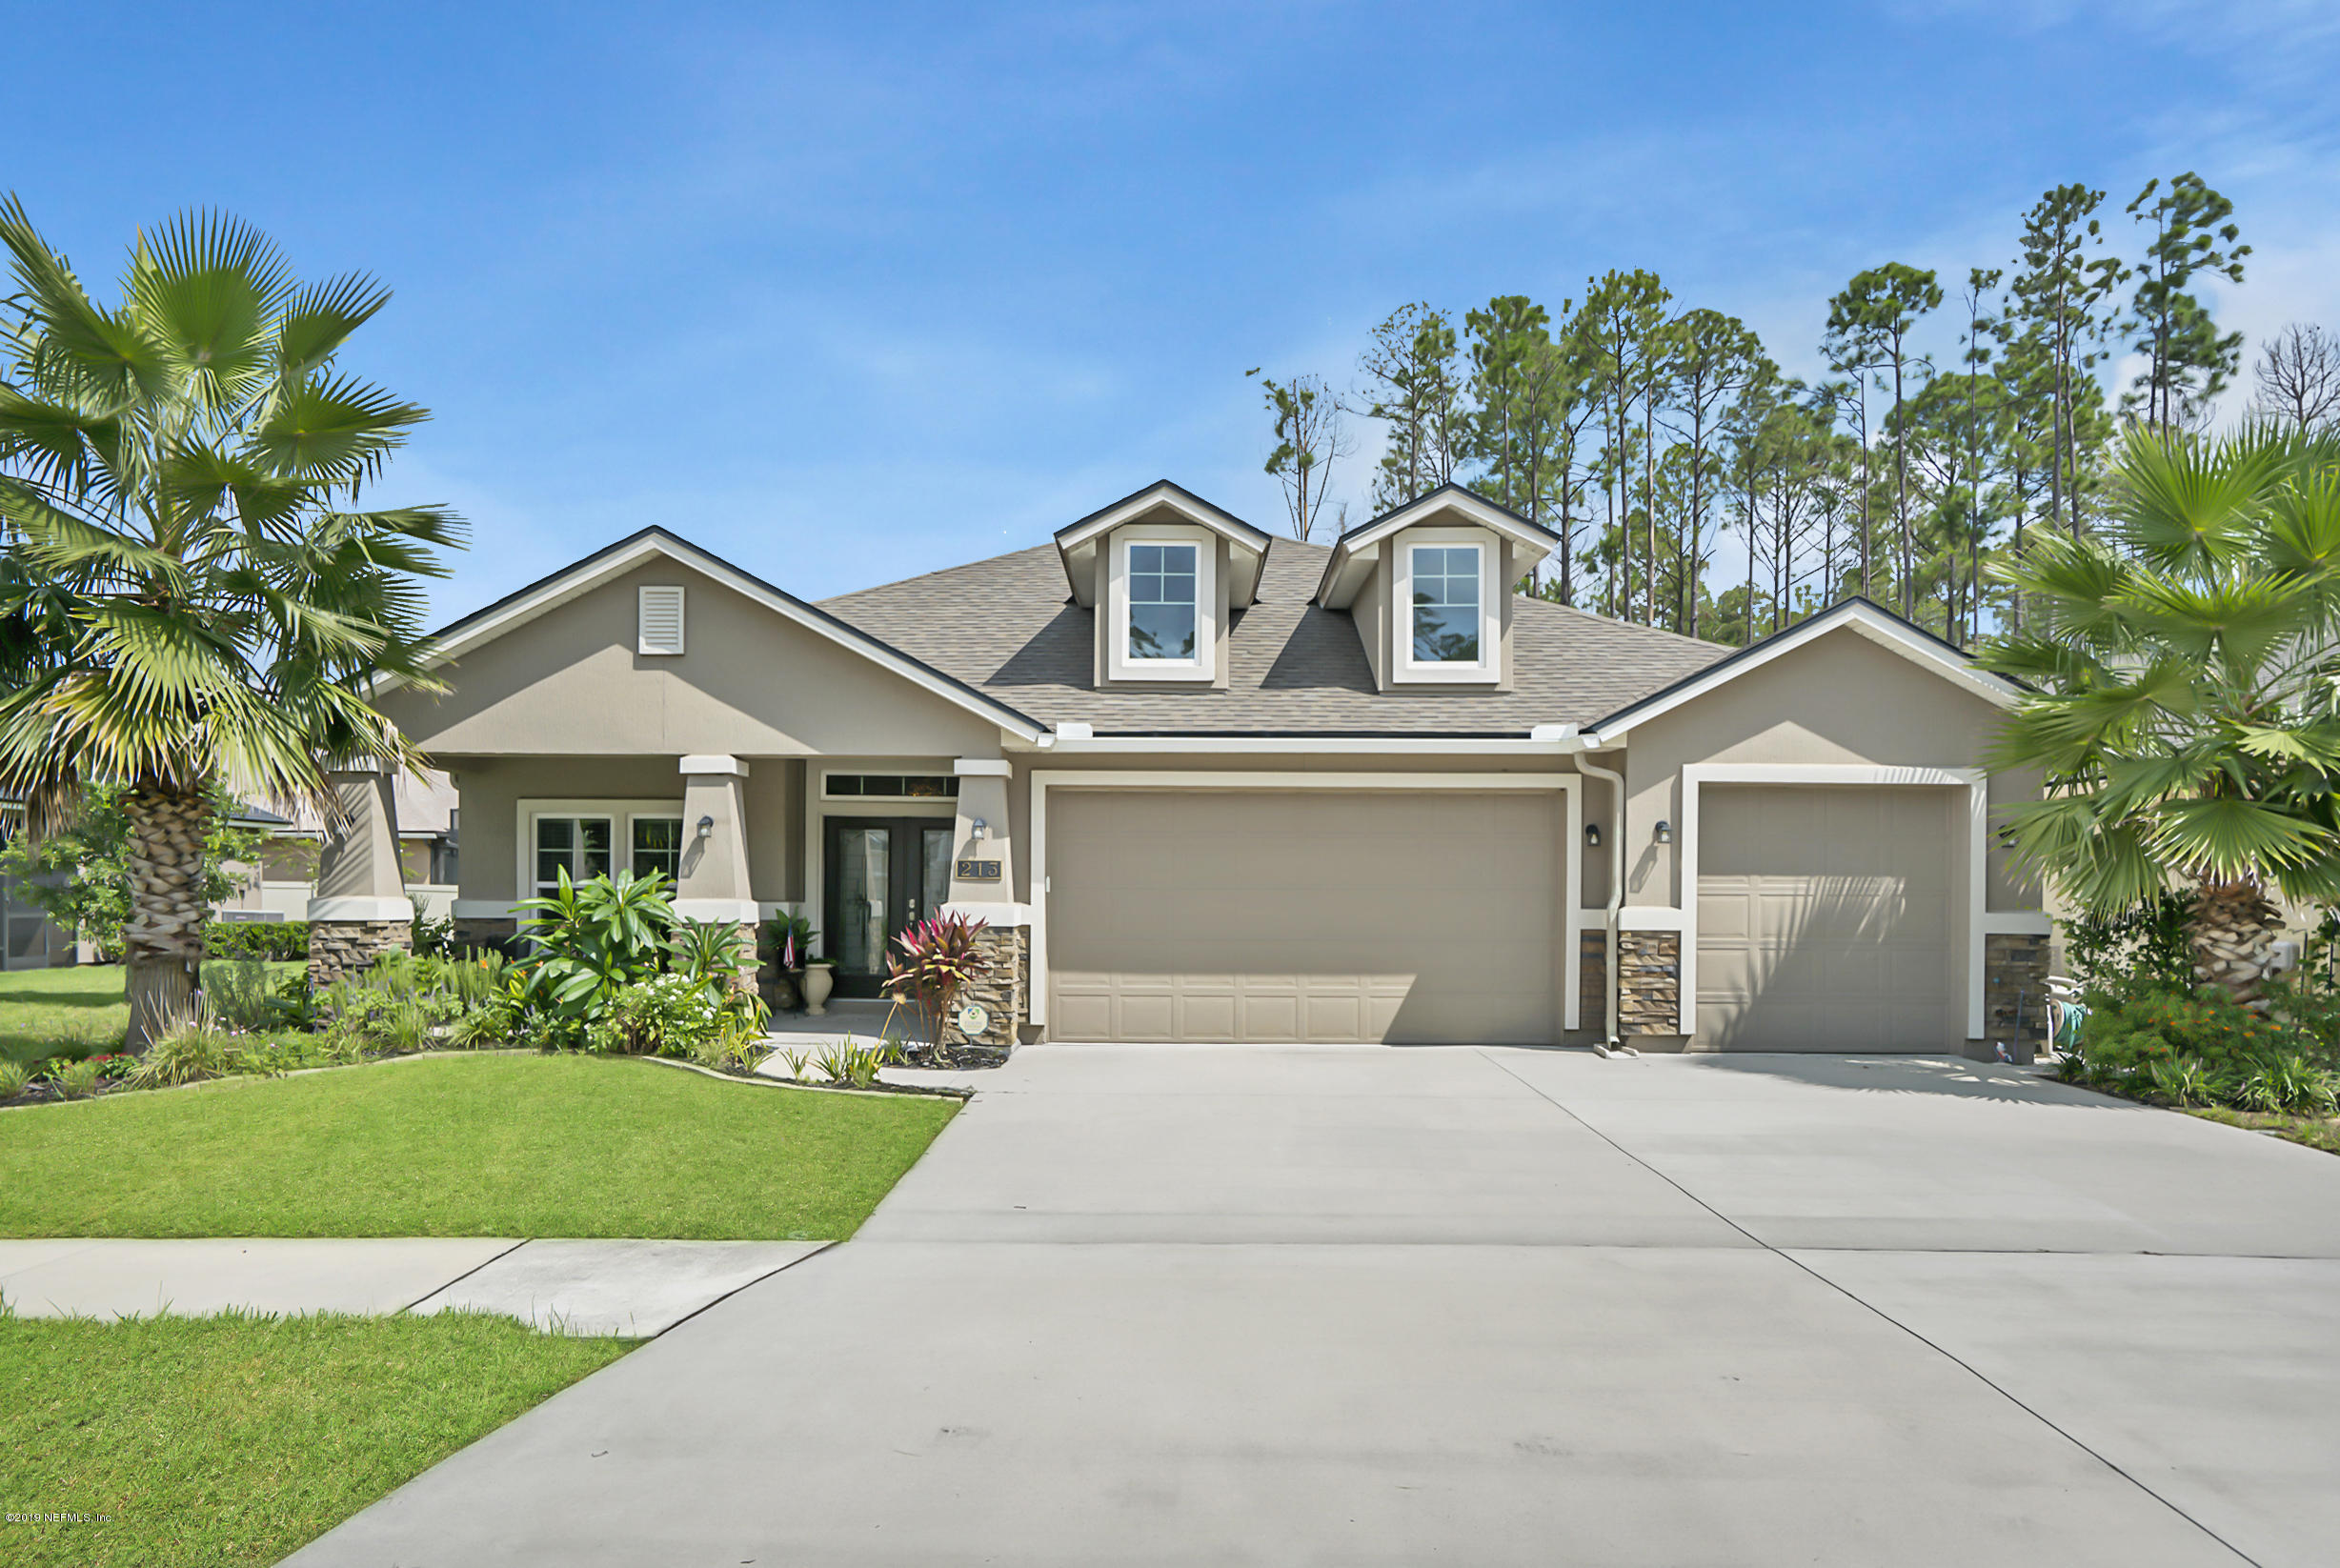 213 COCONUT PALM, PONTE VEDRA, FLORIDA 32081, 4 Bedrooms Bedrooms, ,2 BathroomsBathrooms,Residential - single family,For sale,COCONUT PALM,1010905